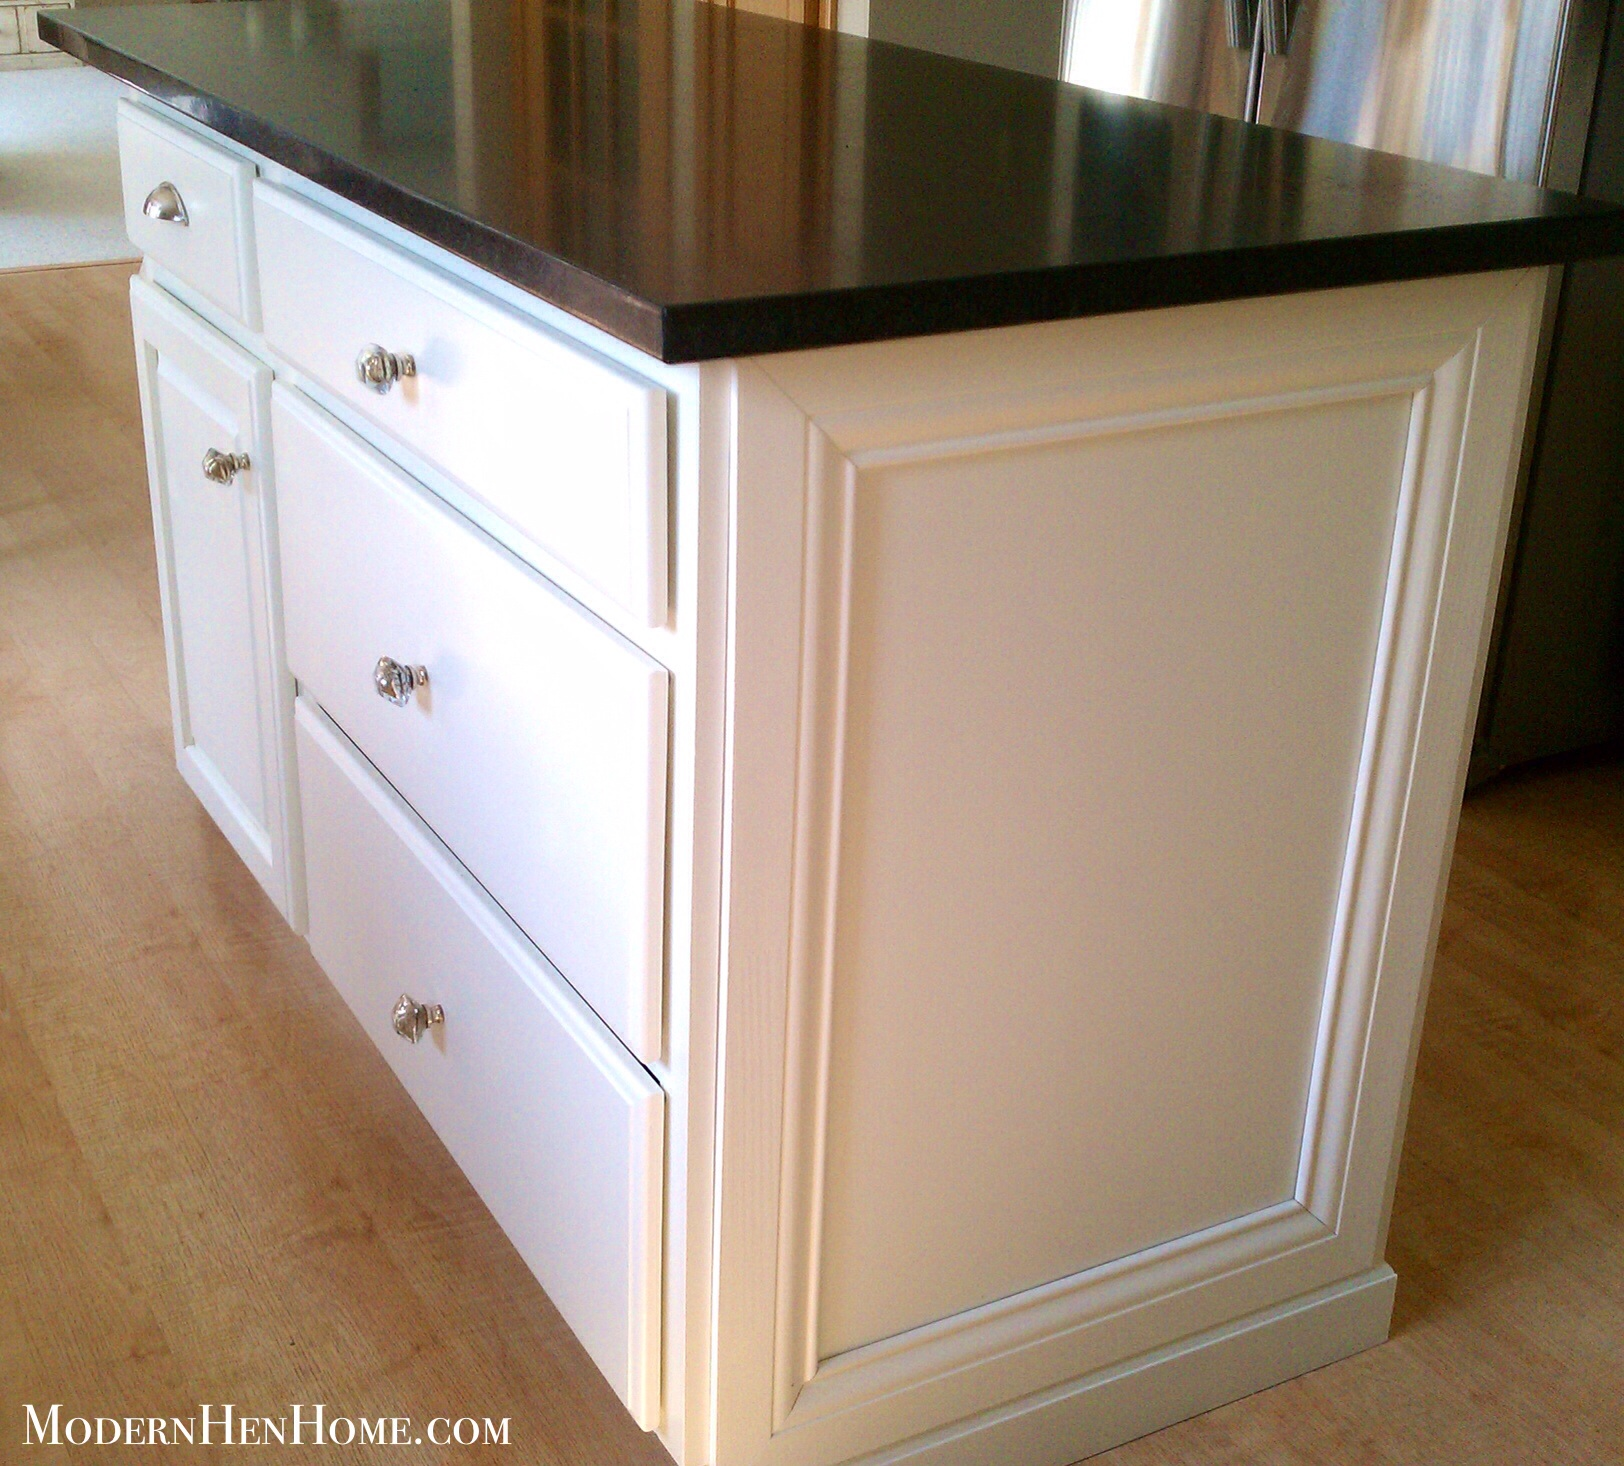 Kitchen Cabinets Moulding: Before & After: Painting A Kitchen Island On A Budget